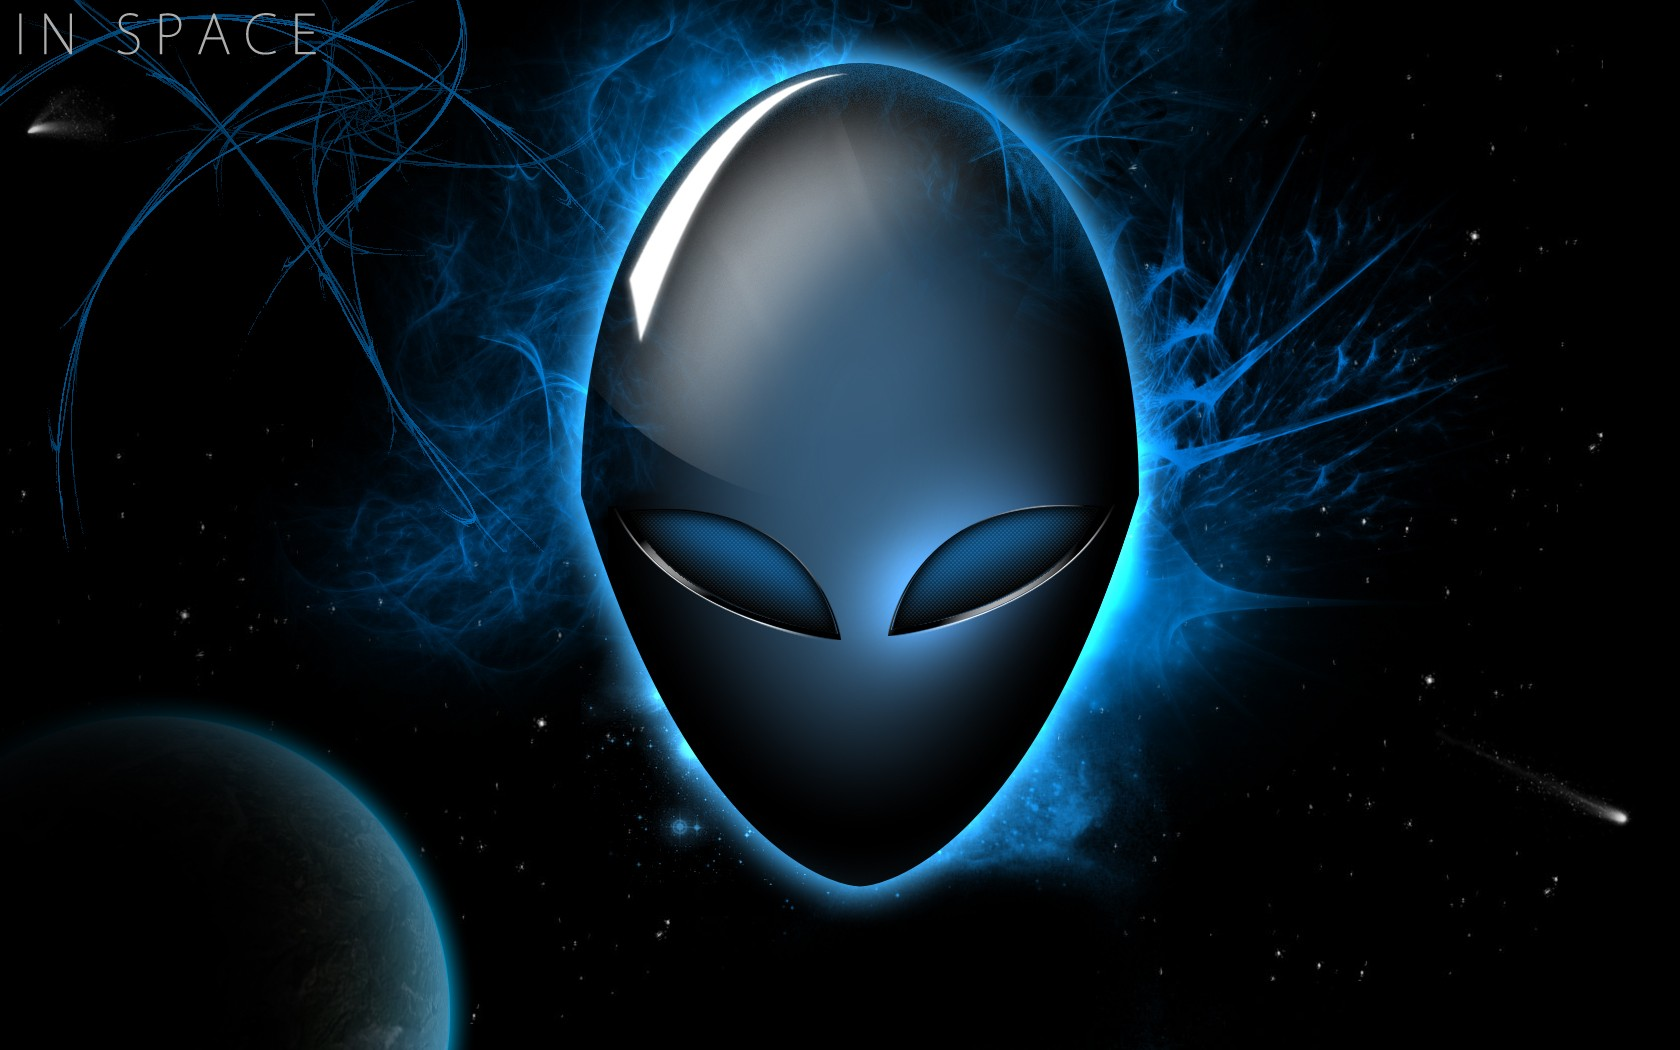 Alien Spaceship Wallpaper Wallpapersafari